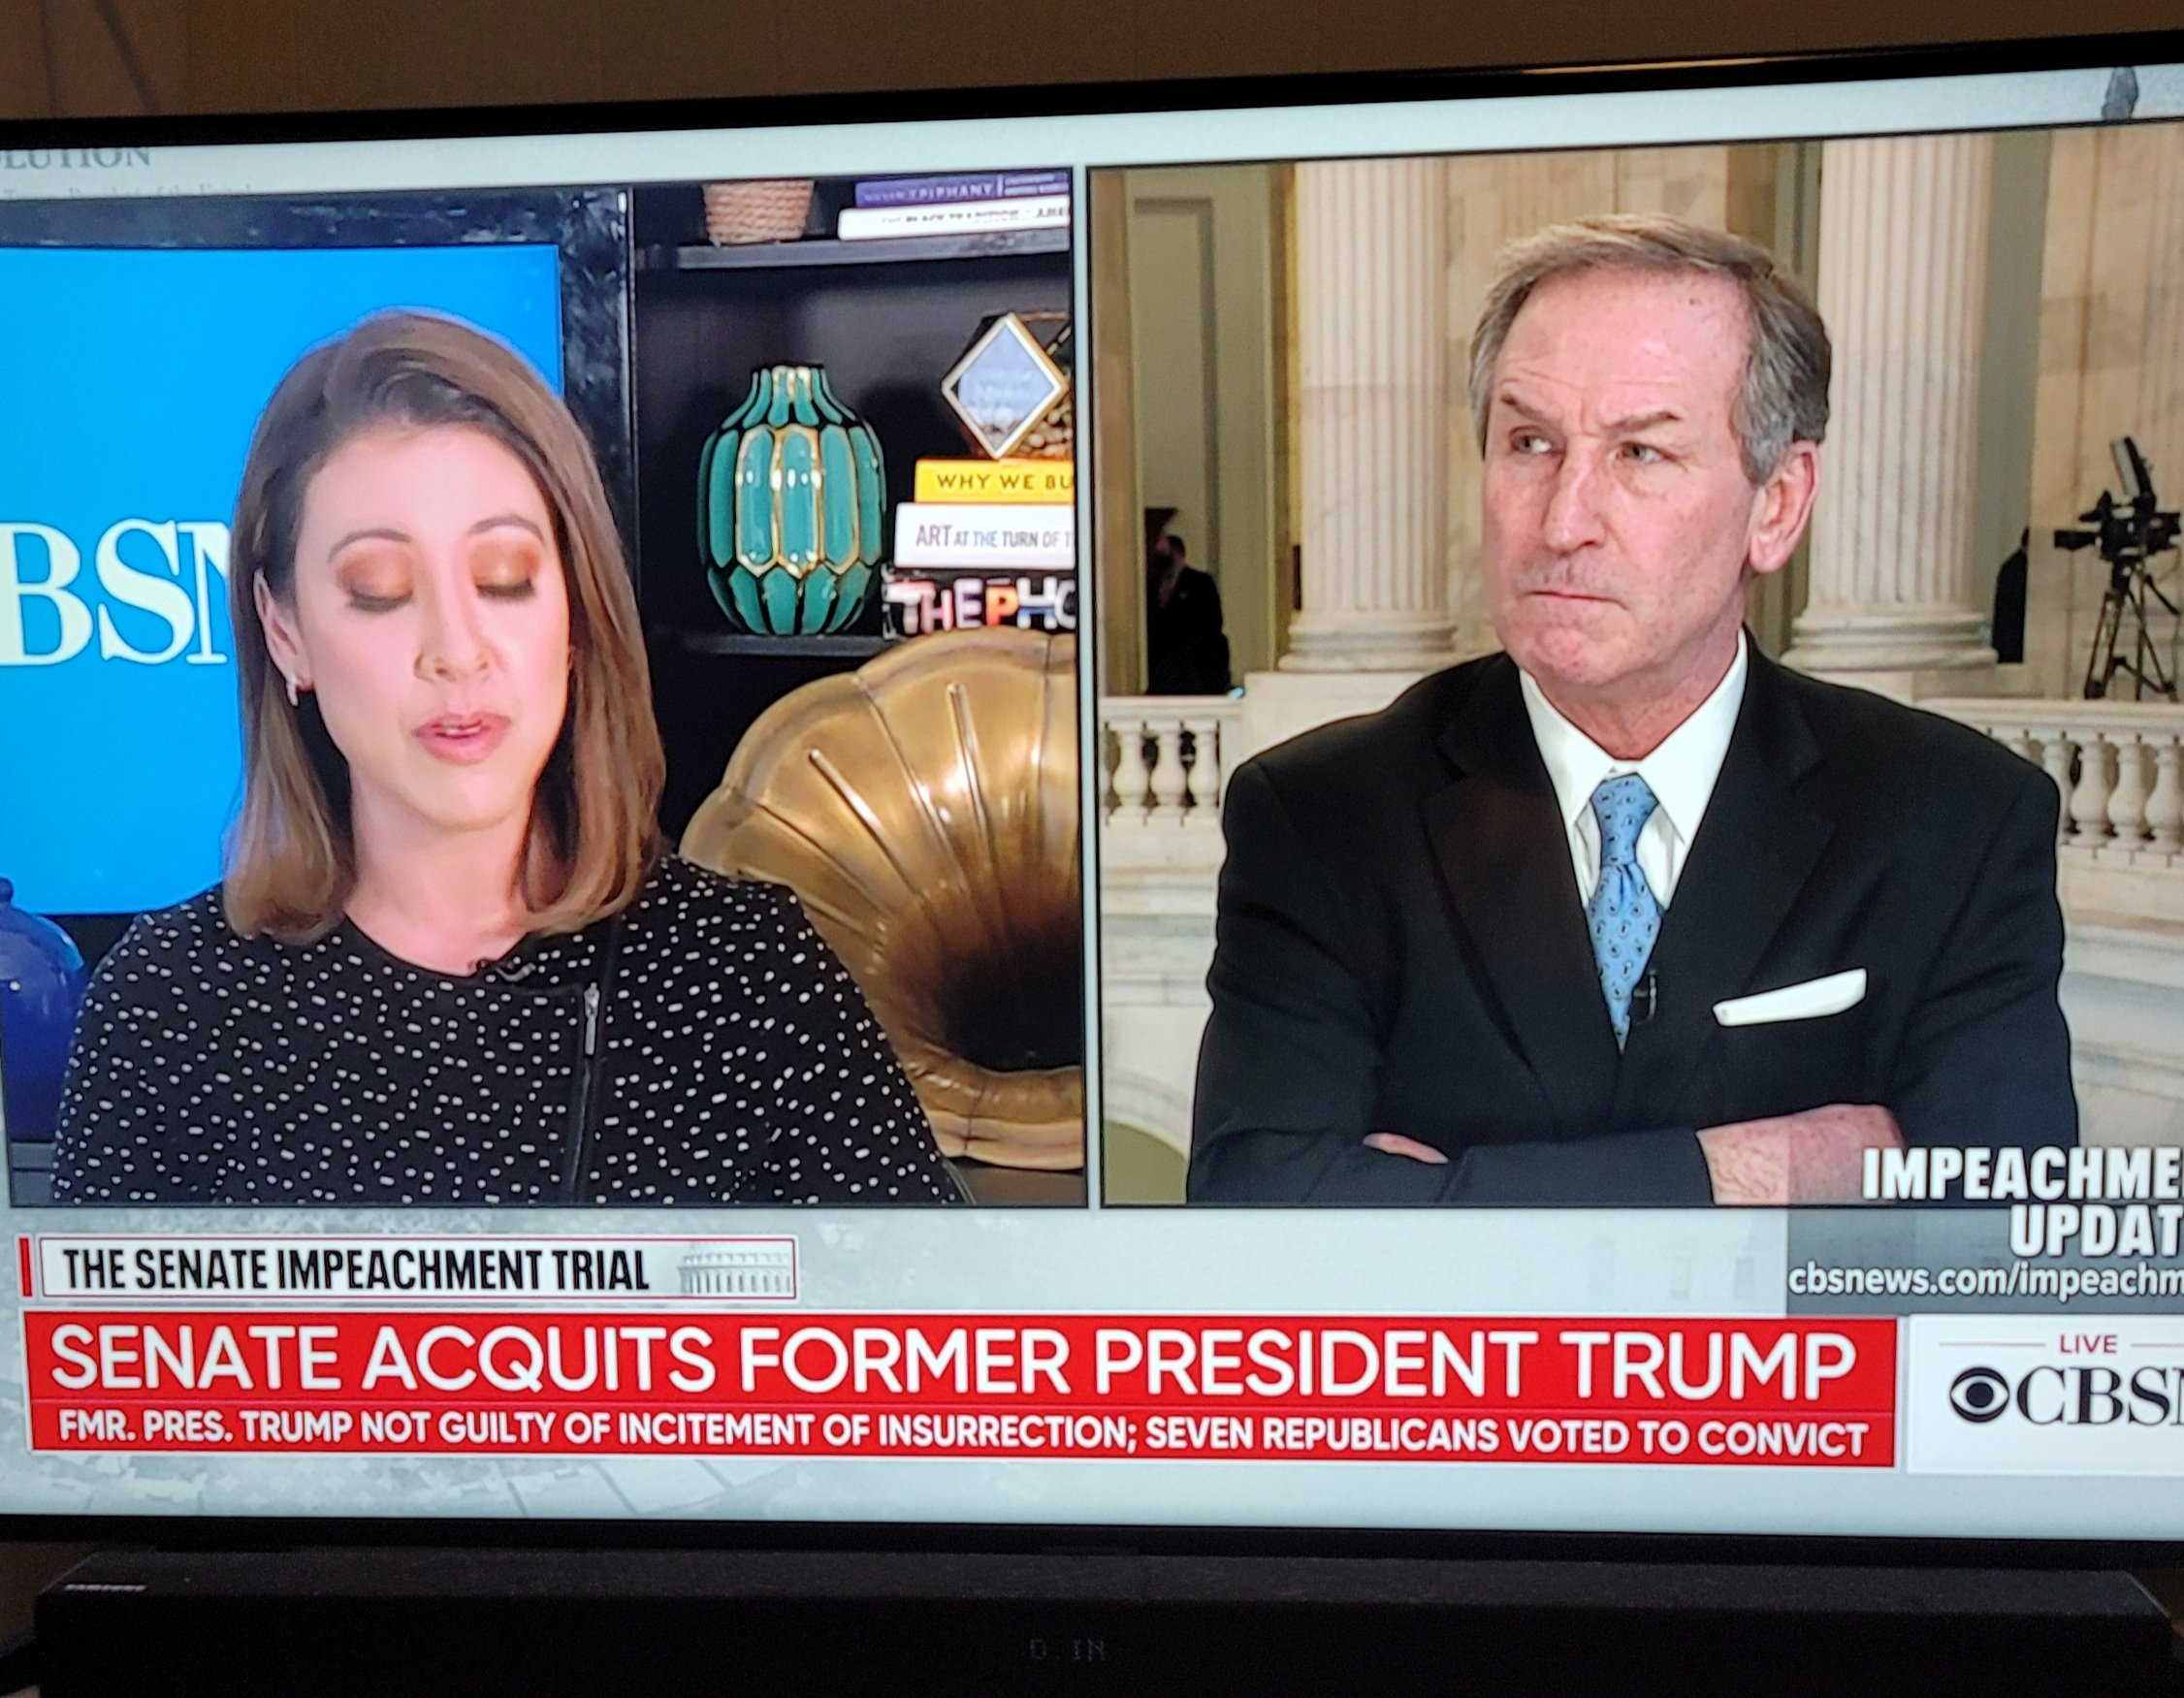 Watch: Trump attorney Michael van der Veen just destroys CBS hack Lana Zak after she defends House managers doctoring of evidence